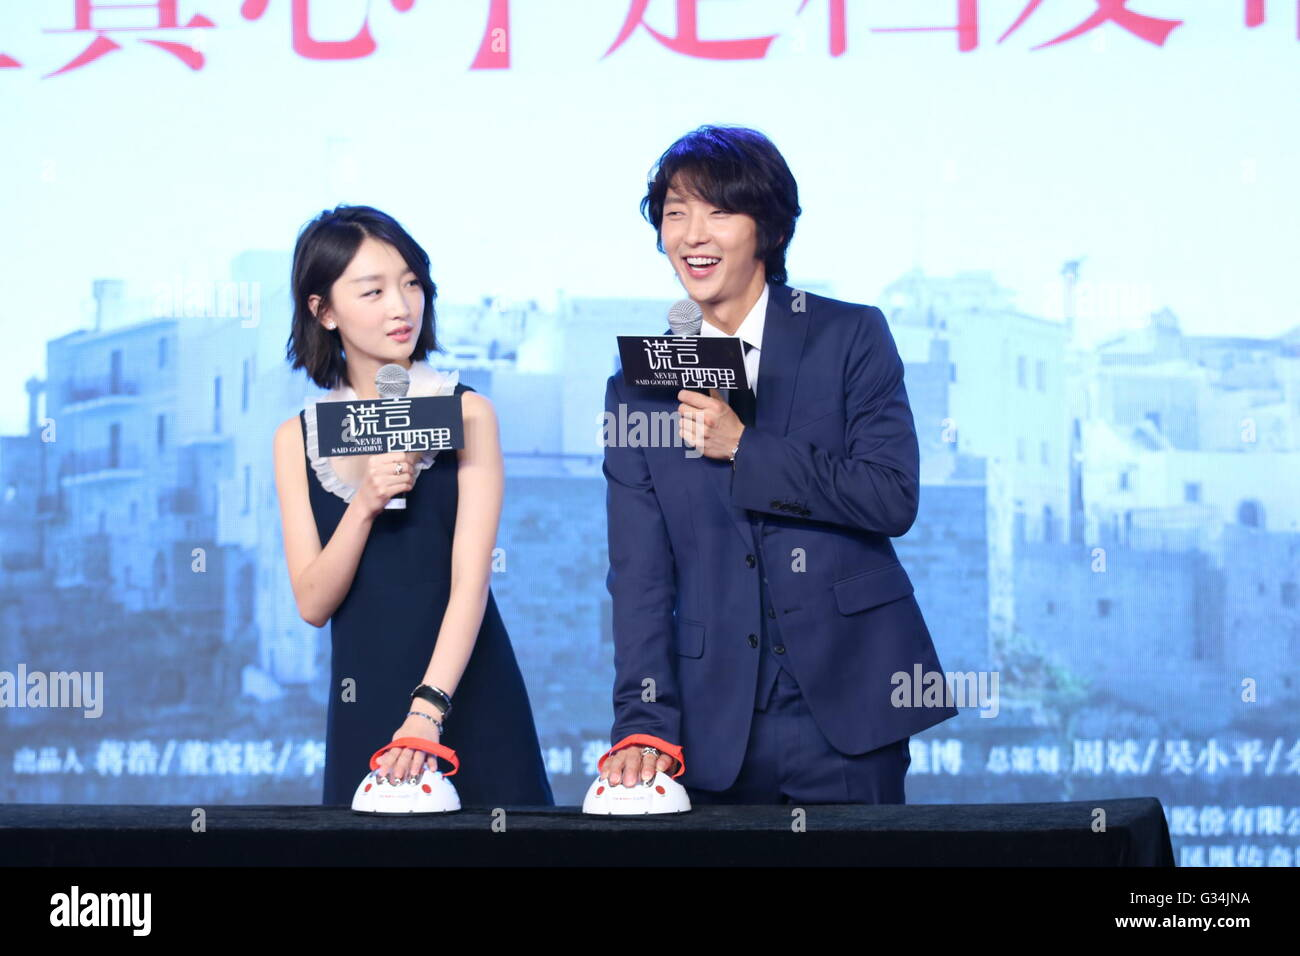 beijing china 07th june 2016 jun ki lee attends the press stock rh alamy com june 10th 2017 afghanistan june 10th 2018 san diego